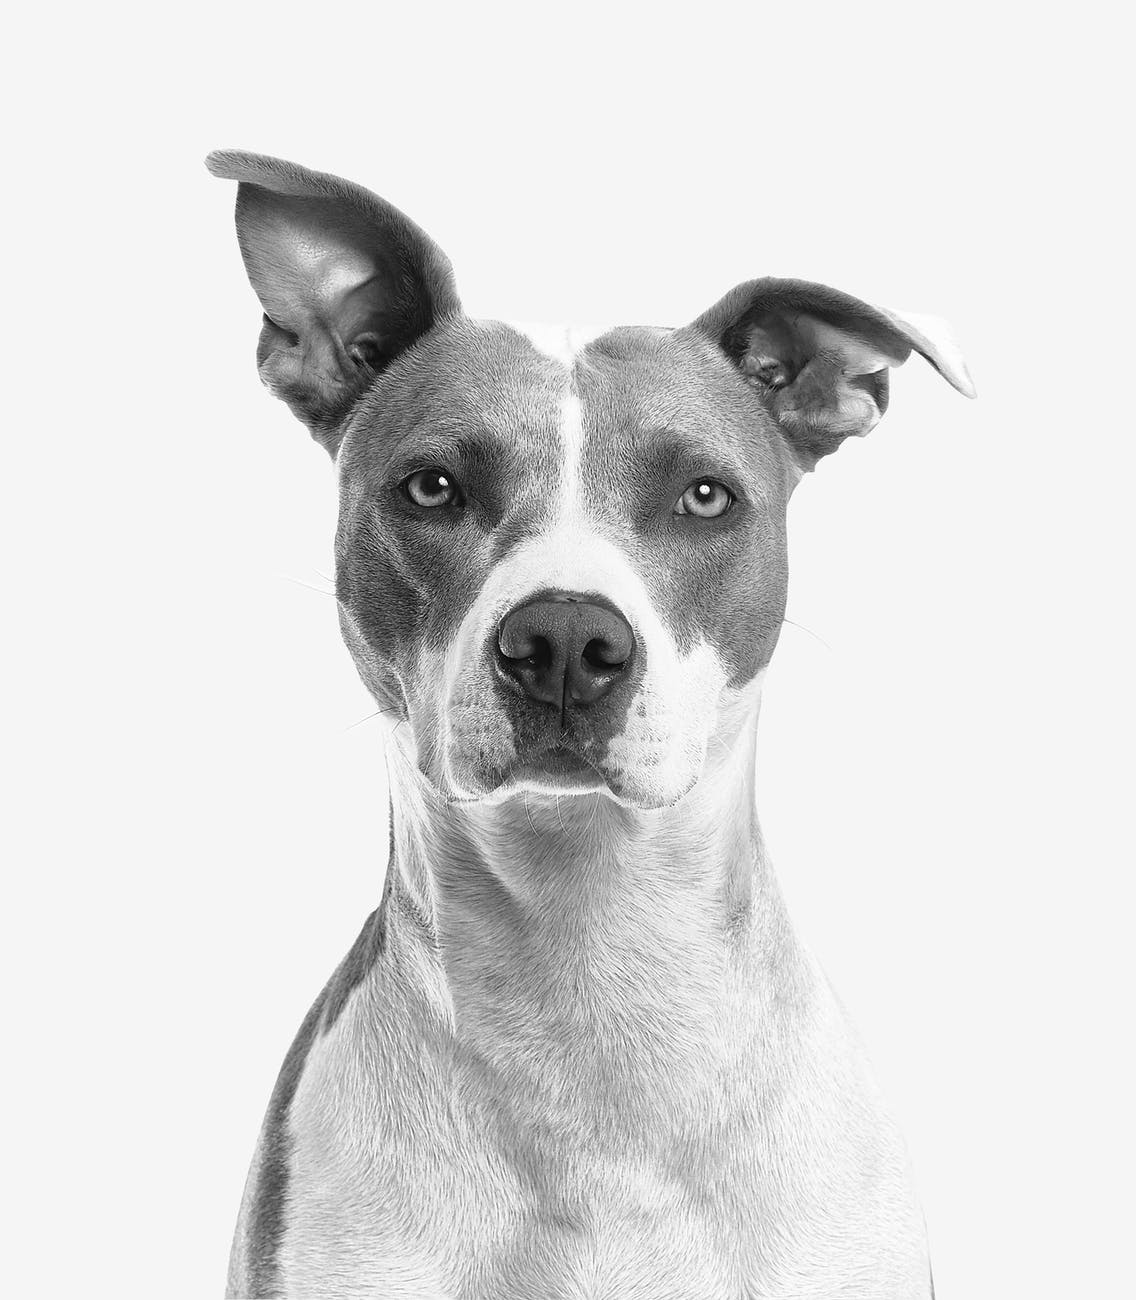 Can You File A Personal Injury Claim After A Dog Bite?